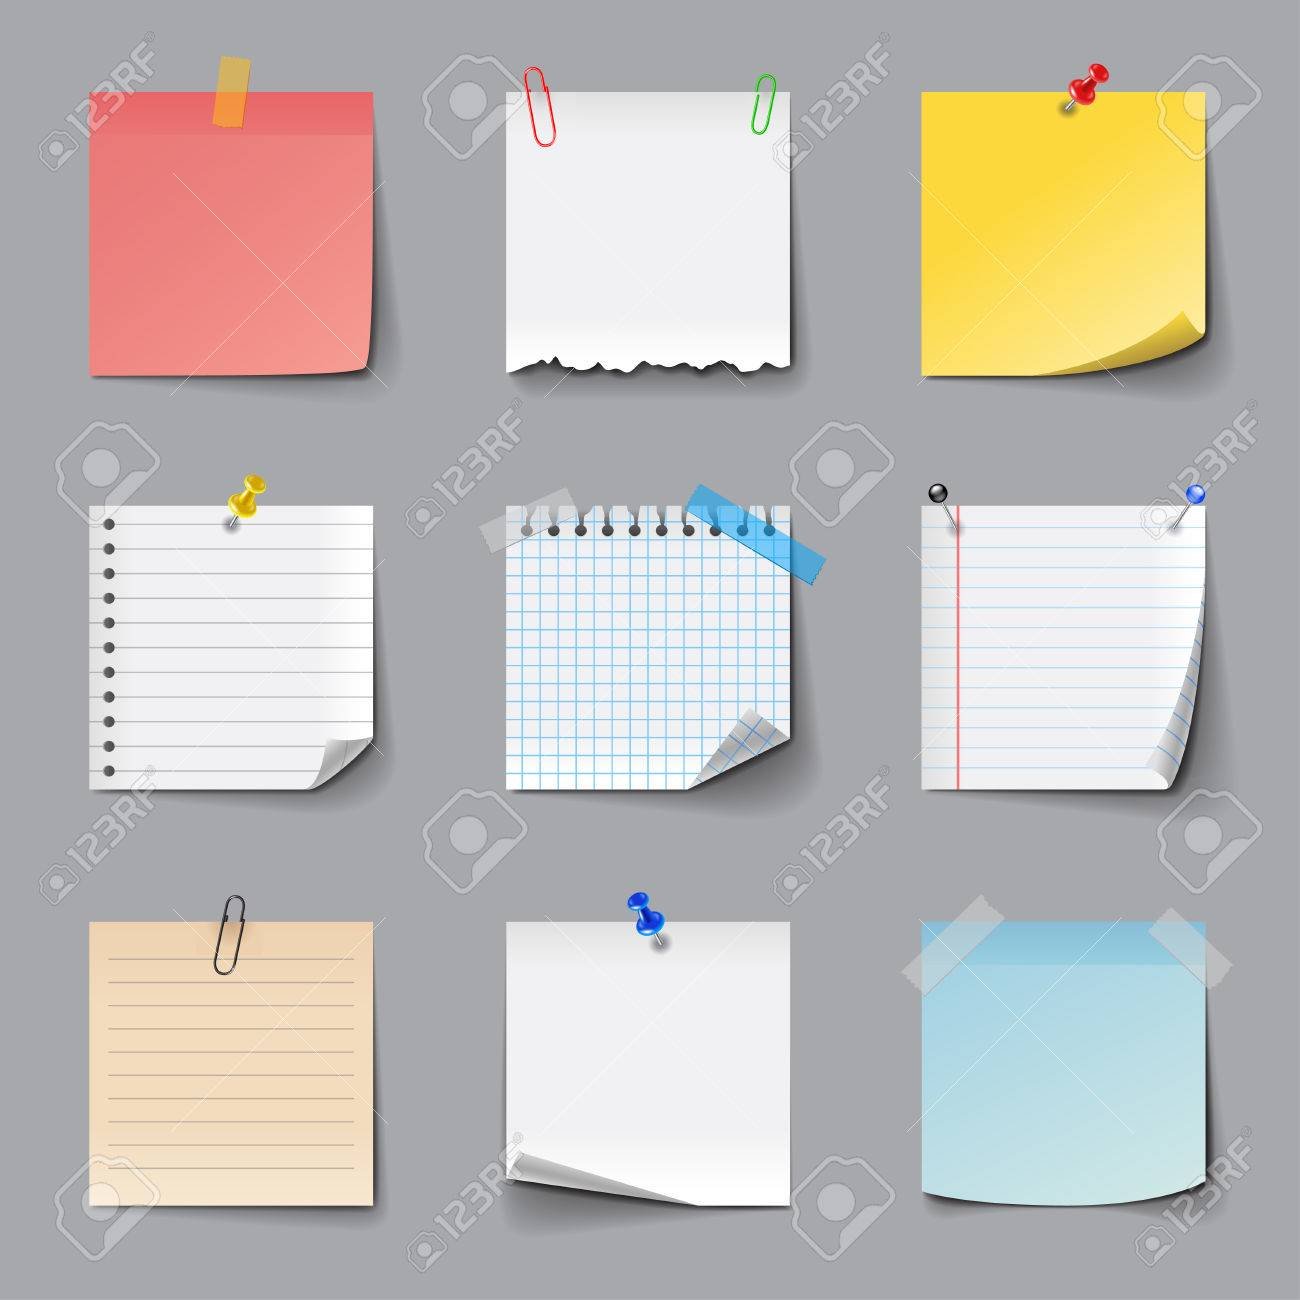 Post it notes icons detailed photo realistic vector set - 58506745